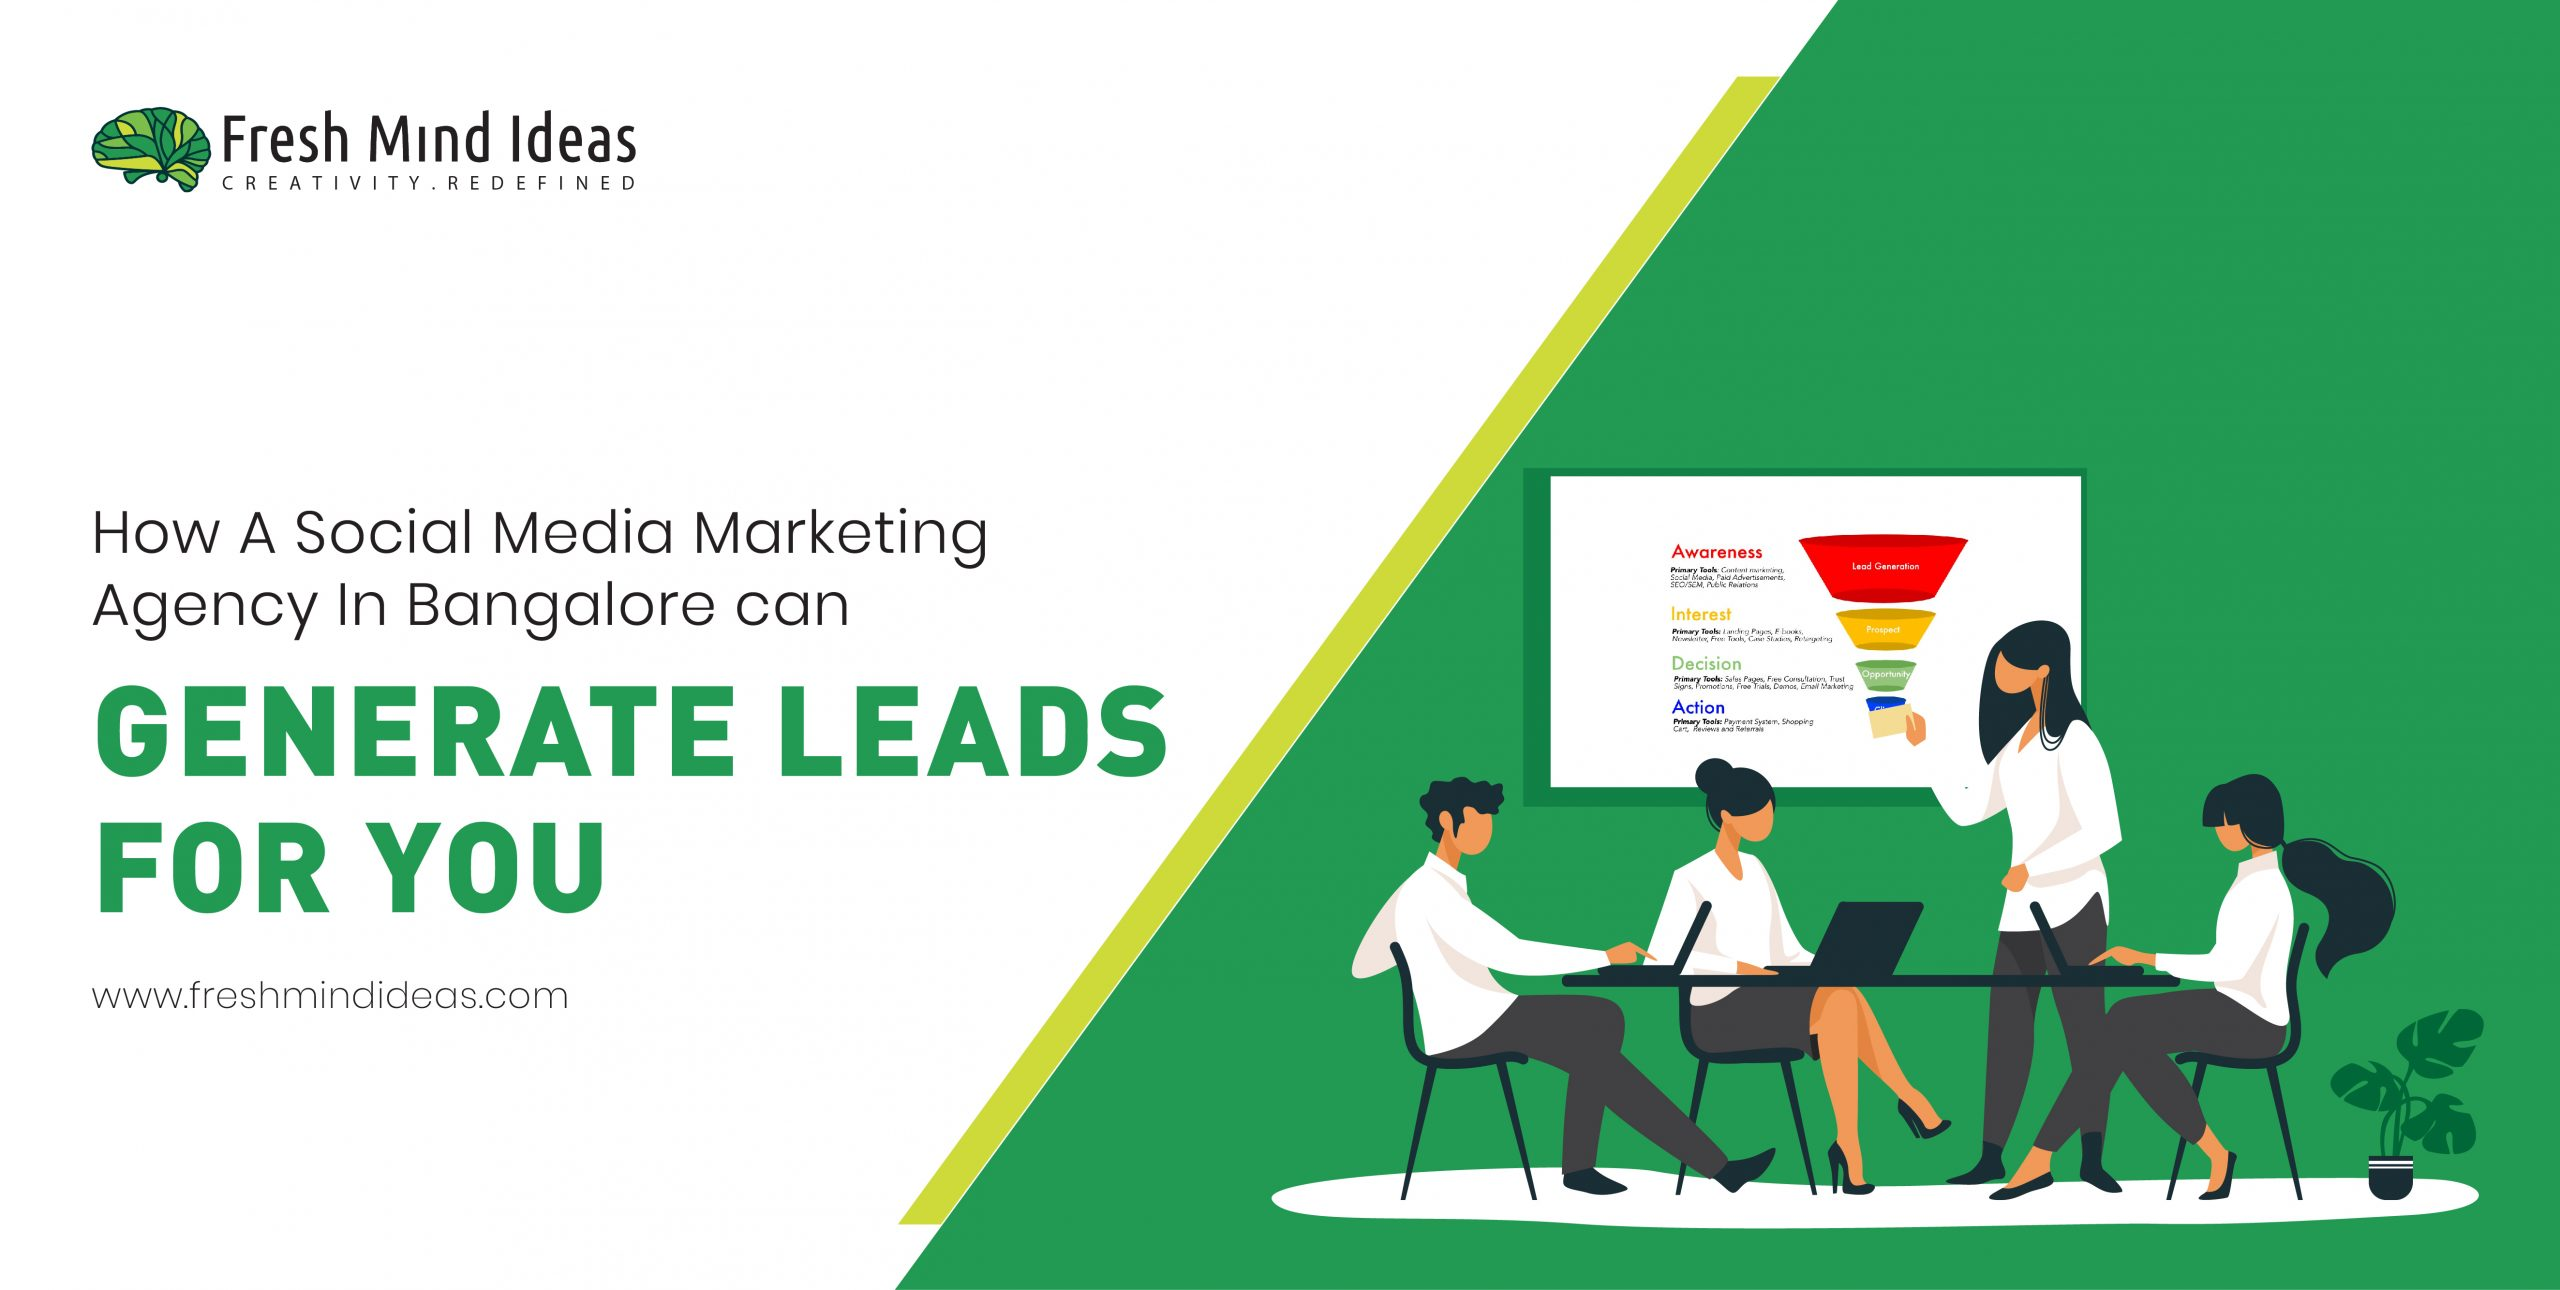 How A Social Media Marketing Agency In Bangalore Can Generate Leads For You